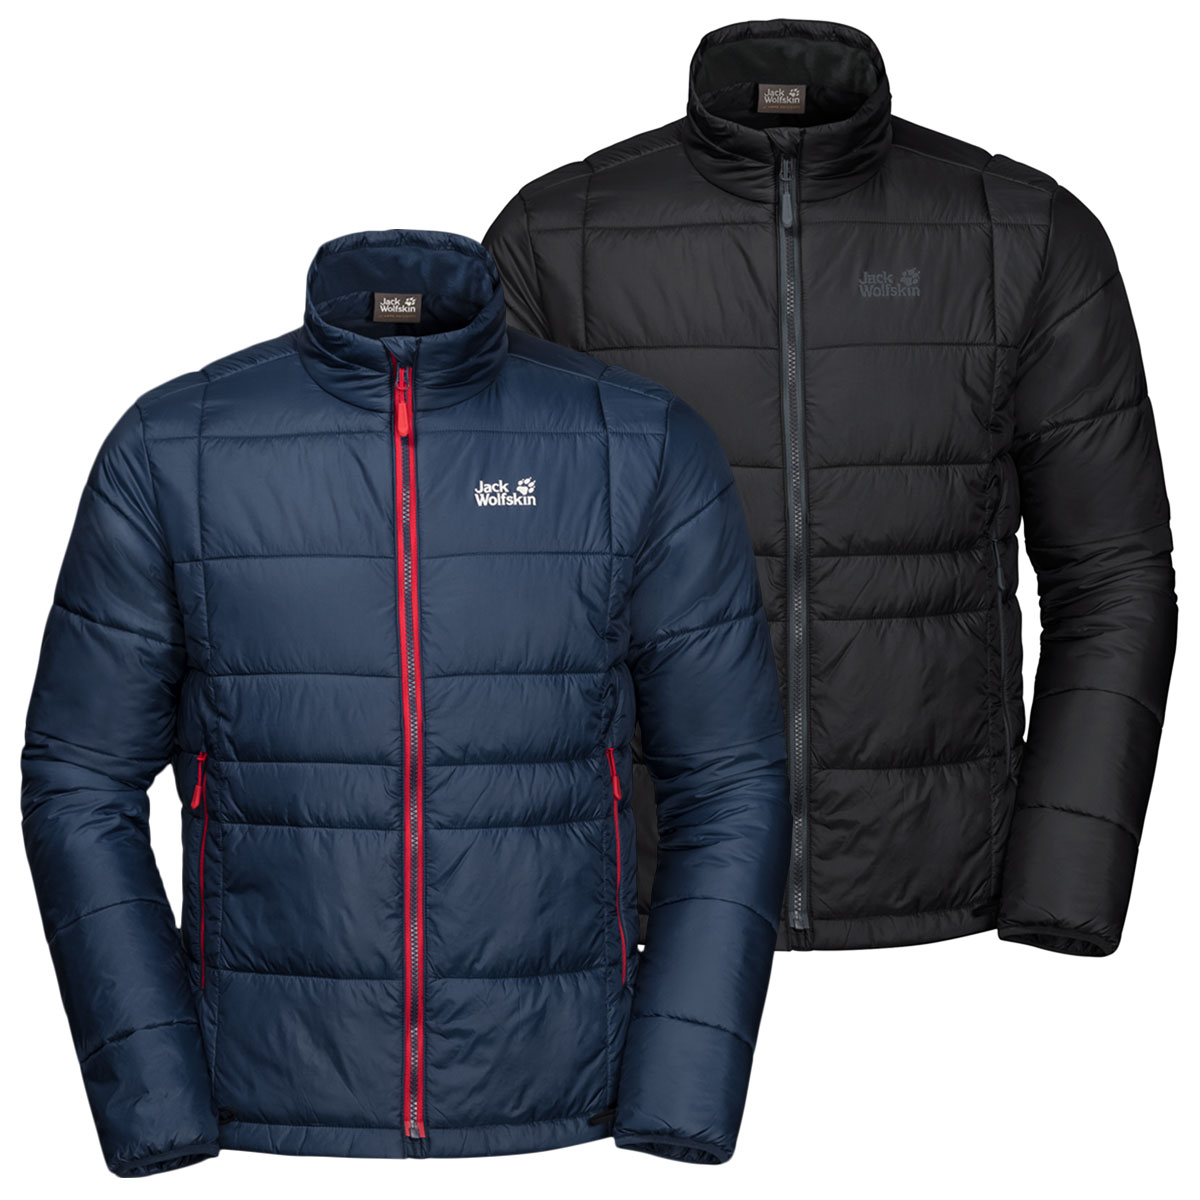 Details about Jack Wolfskin Mens Argon Water Resitant Windproof PFC Free Jacket 26% OFF RRP